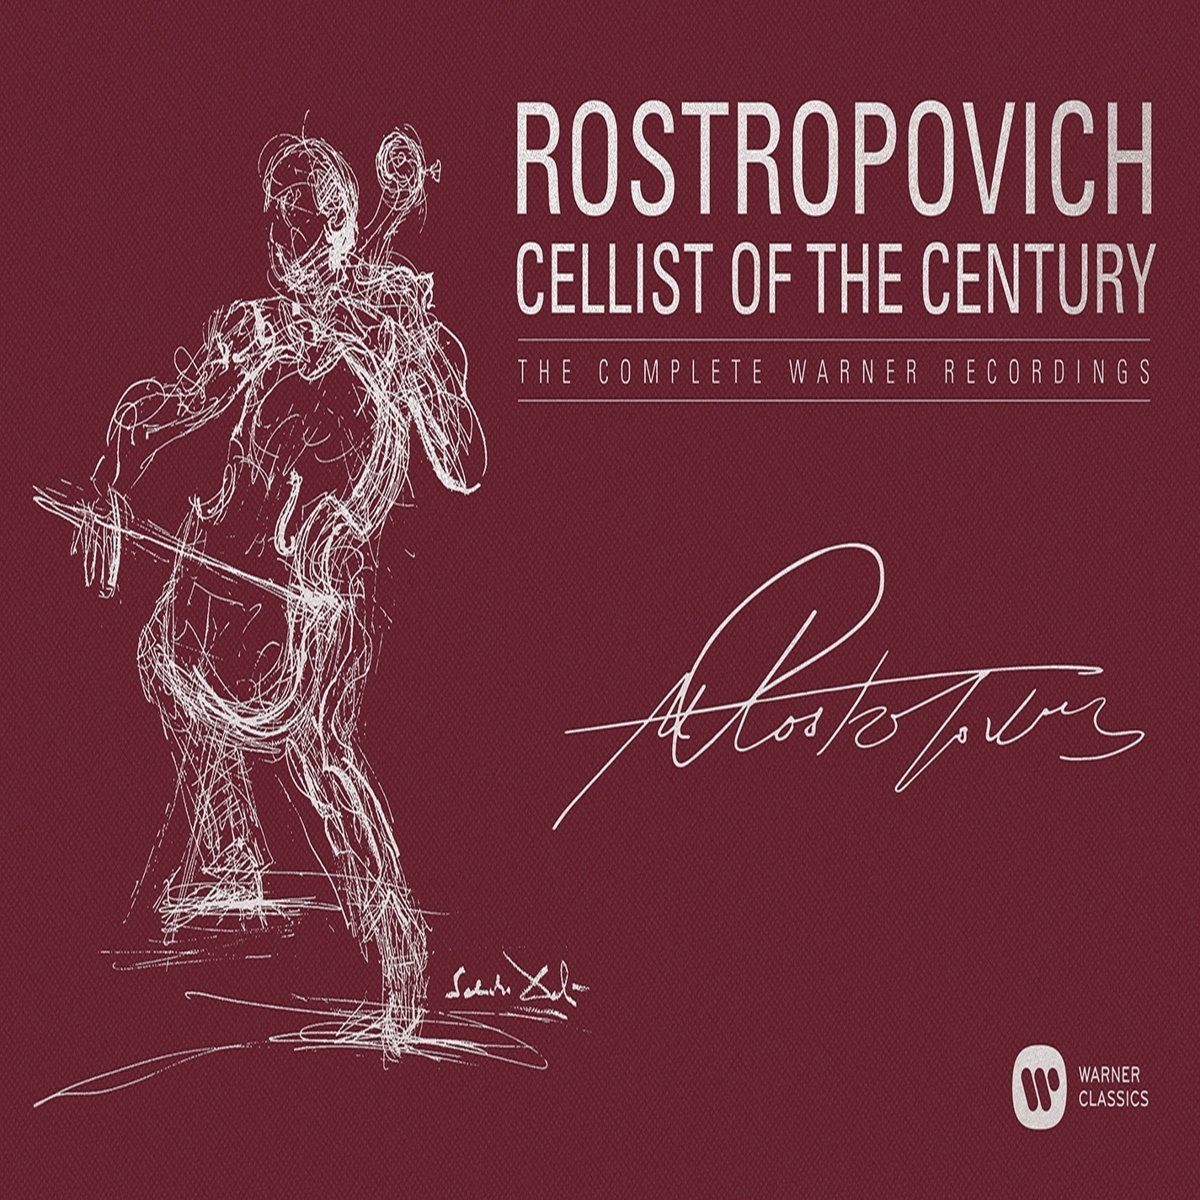 Mstislav Rostropovich - Cellist of the Century -  The Complete Warner Recordings (40CD)